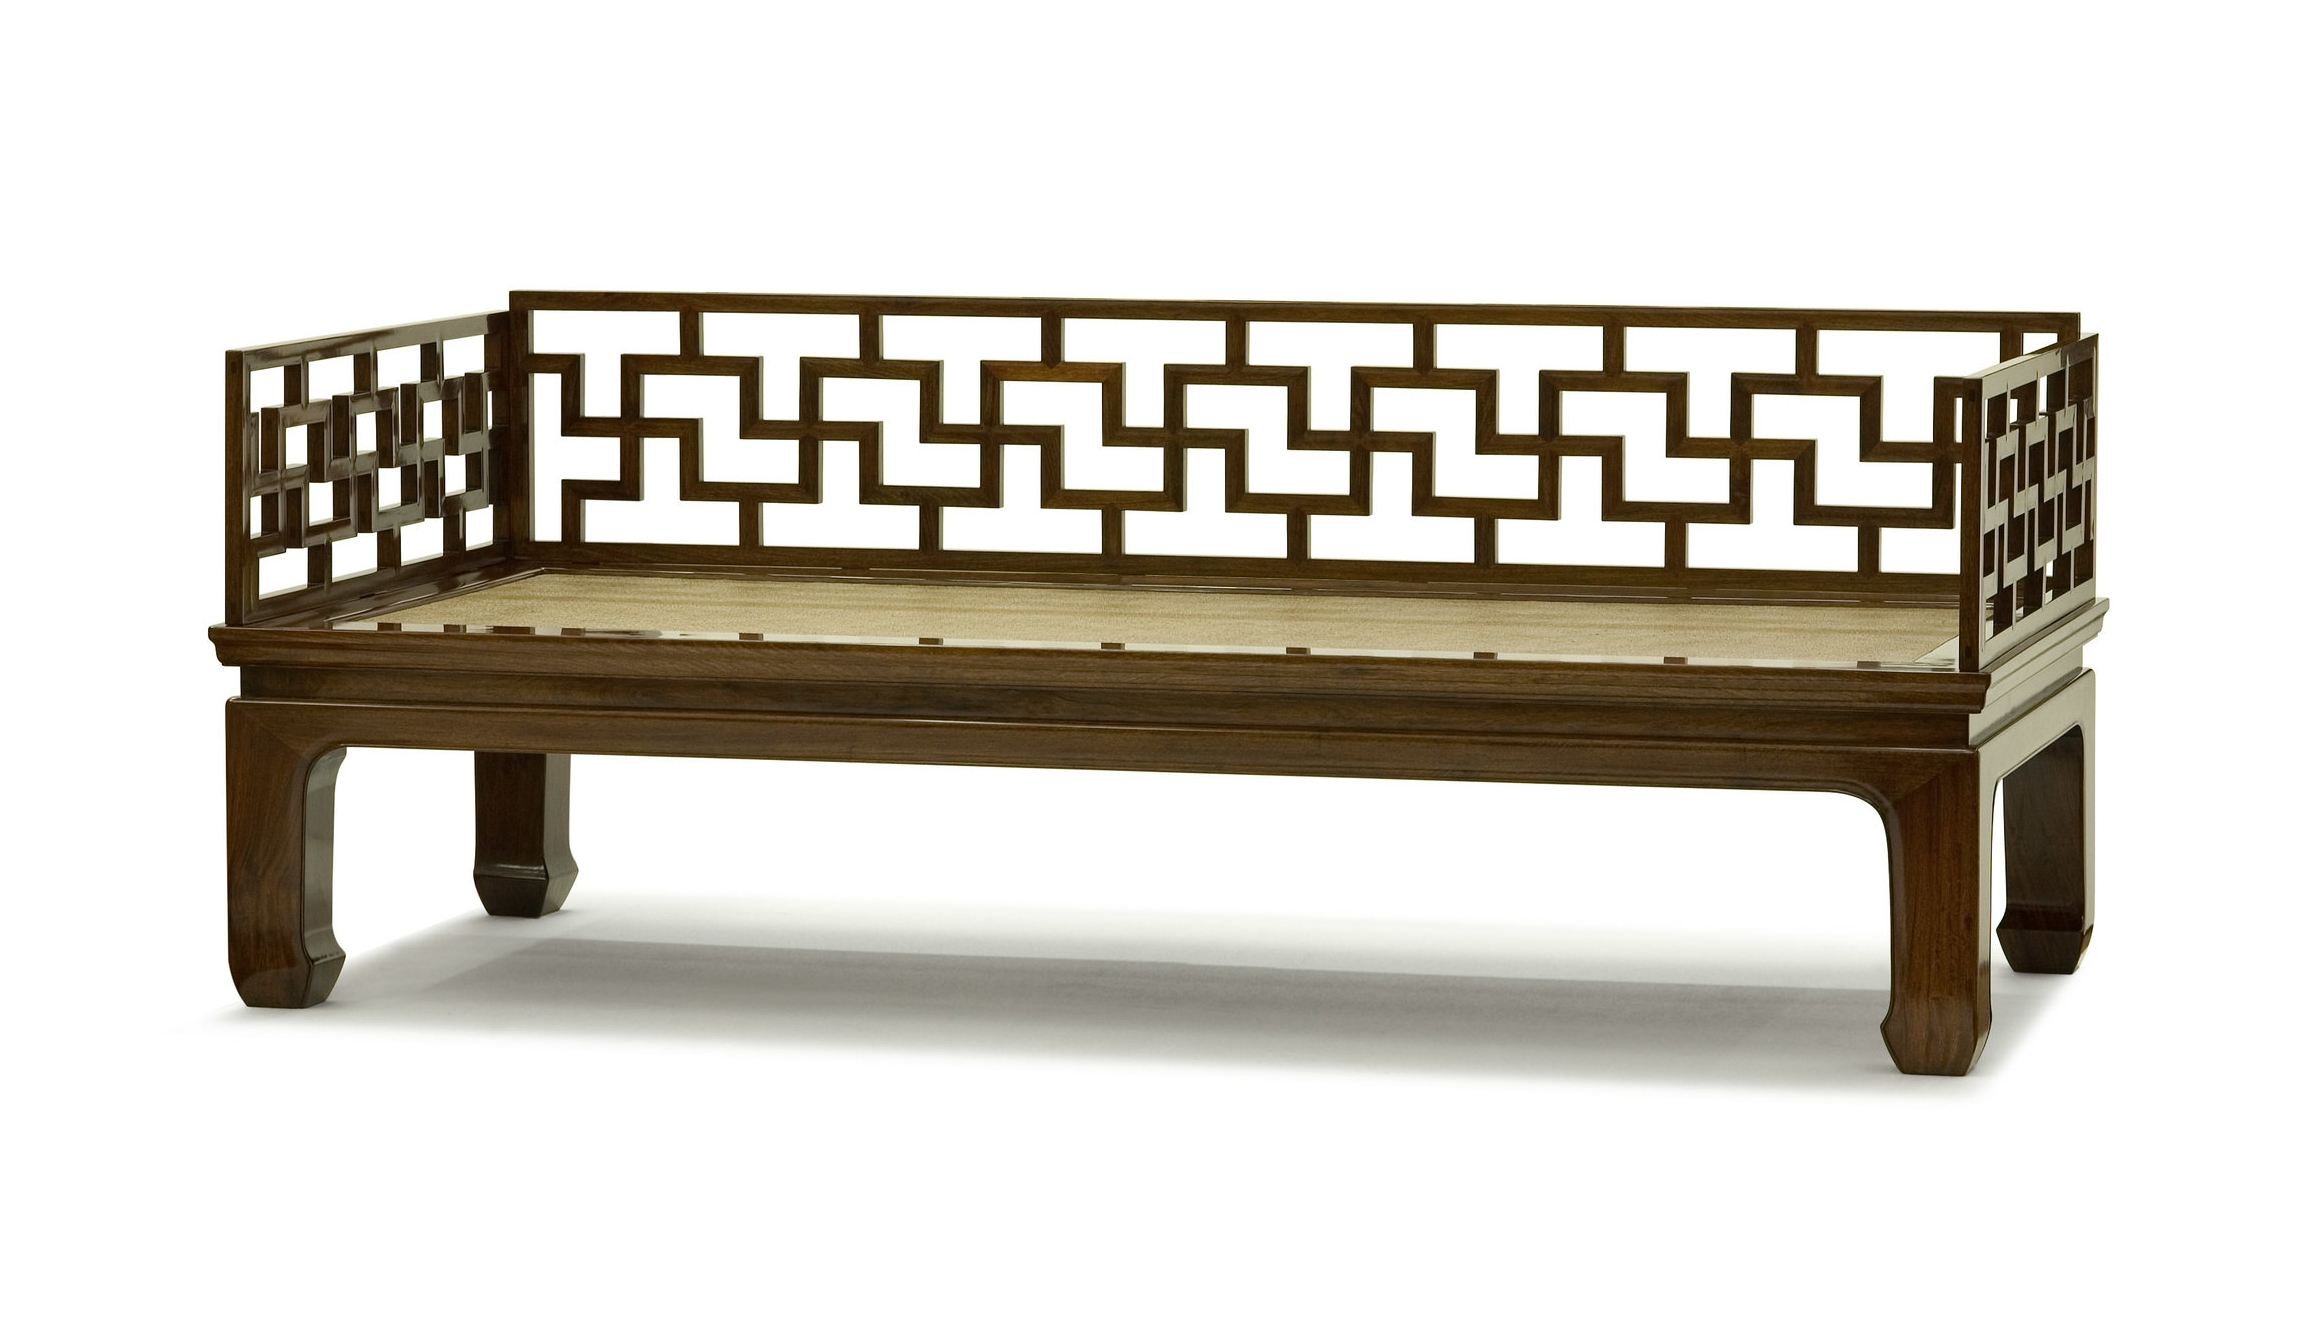 ....chinese ming style furniture : daybed ..中式明式家具 : 罗汉床....